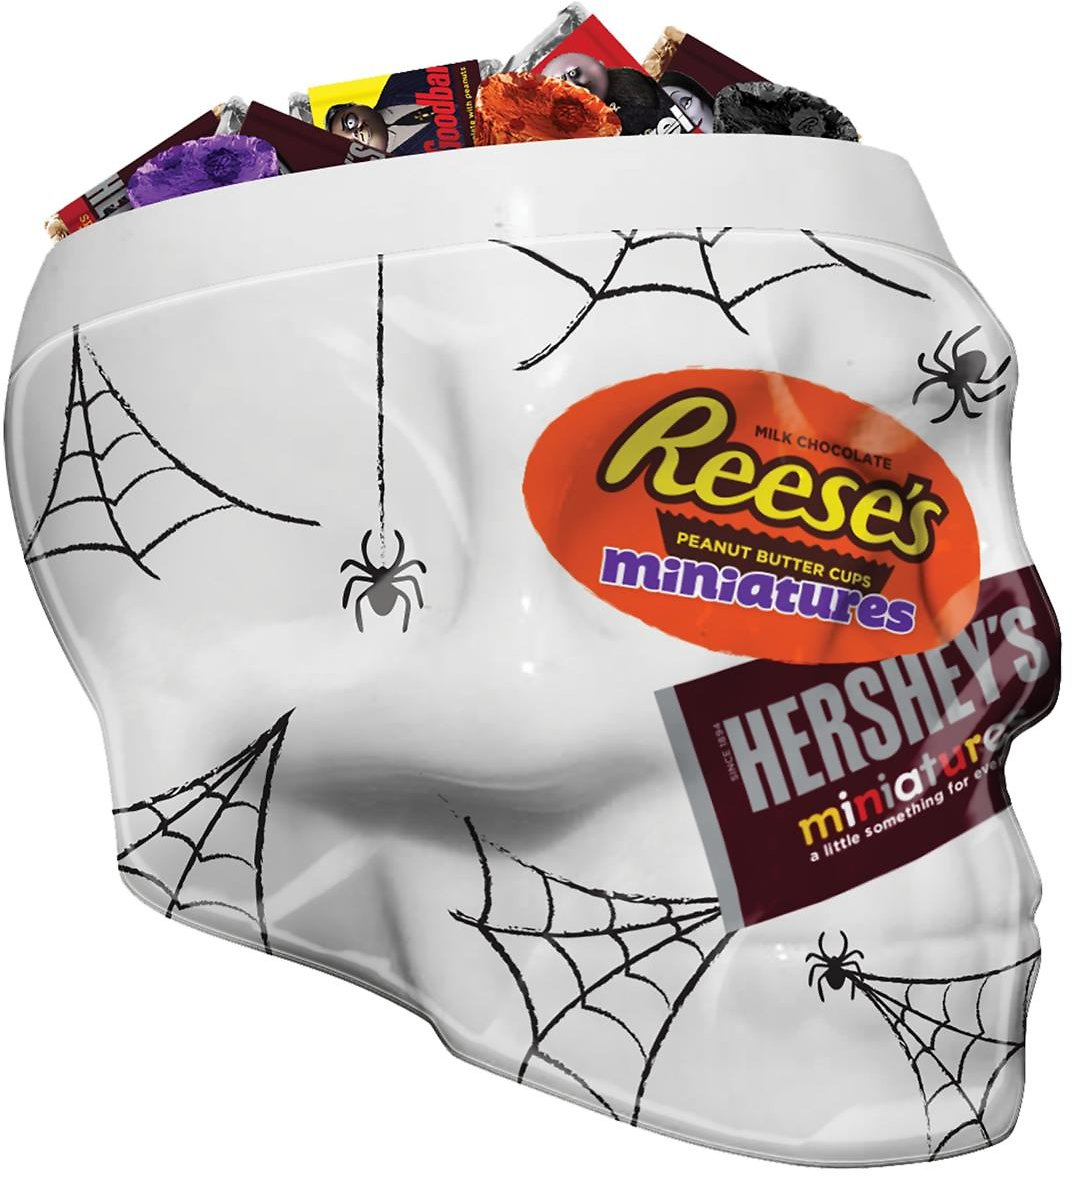 Hershey's, Halloween Miniatures Assorted Chocolate Candy Skull Bowl, 115 Pieces, 37 Oz